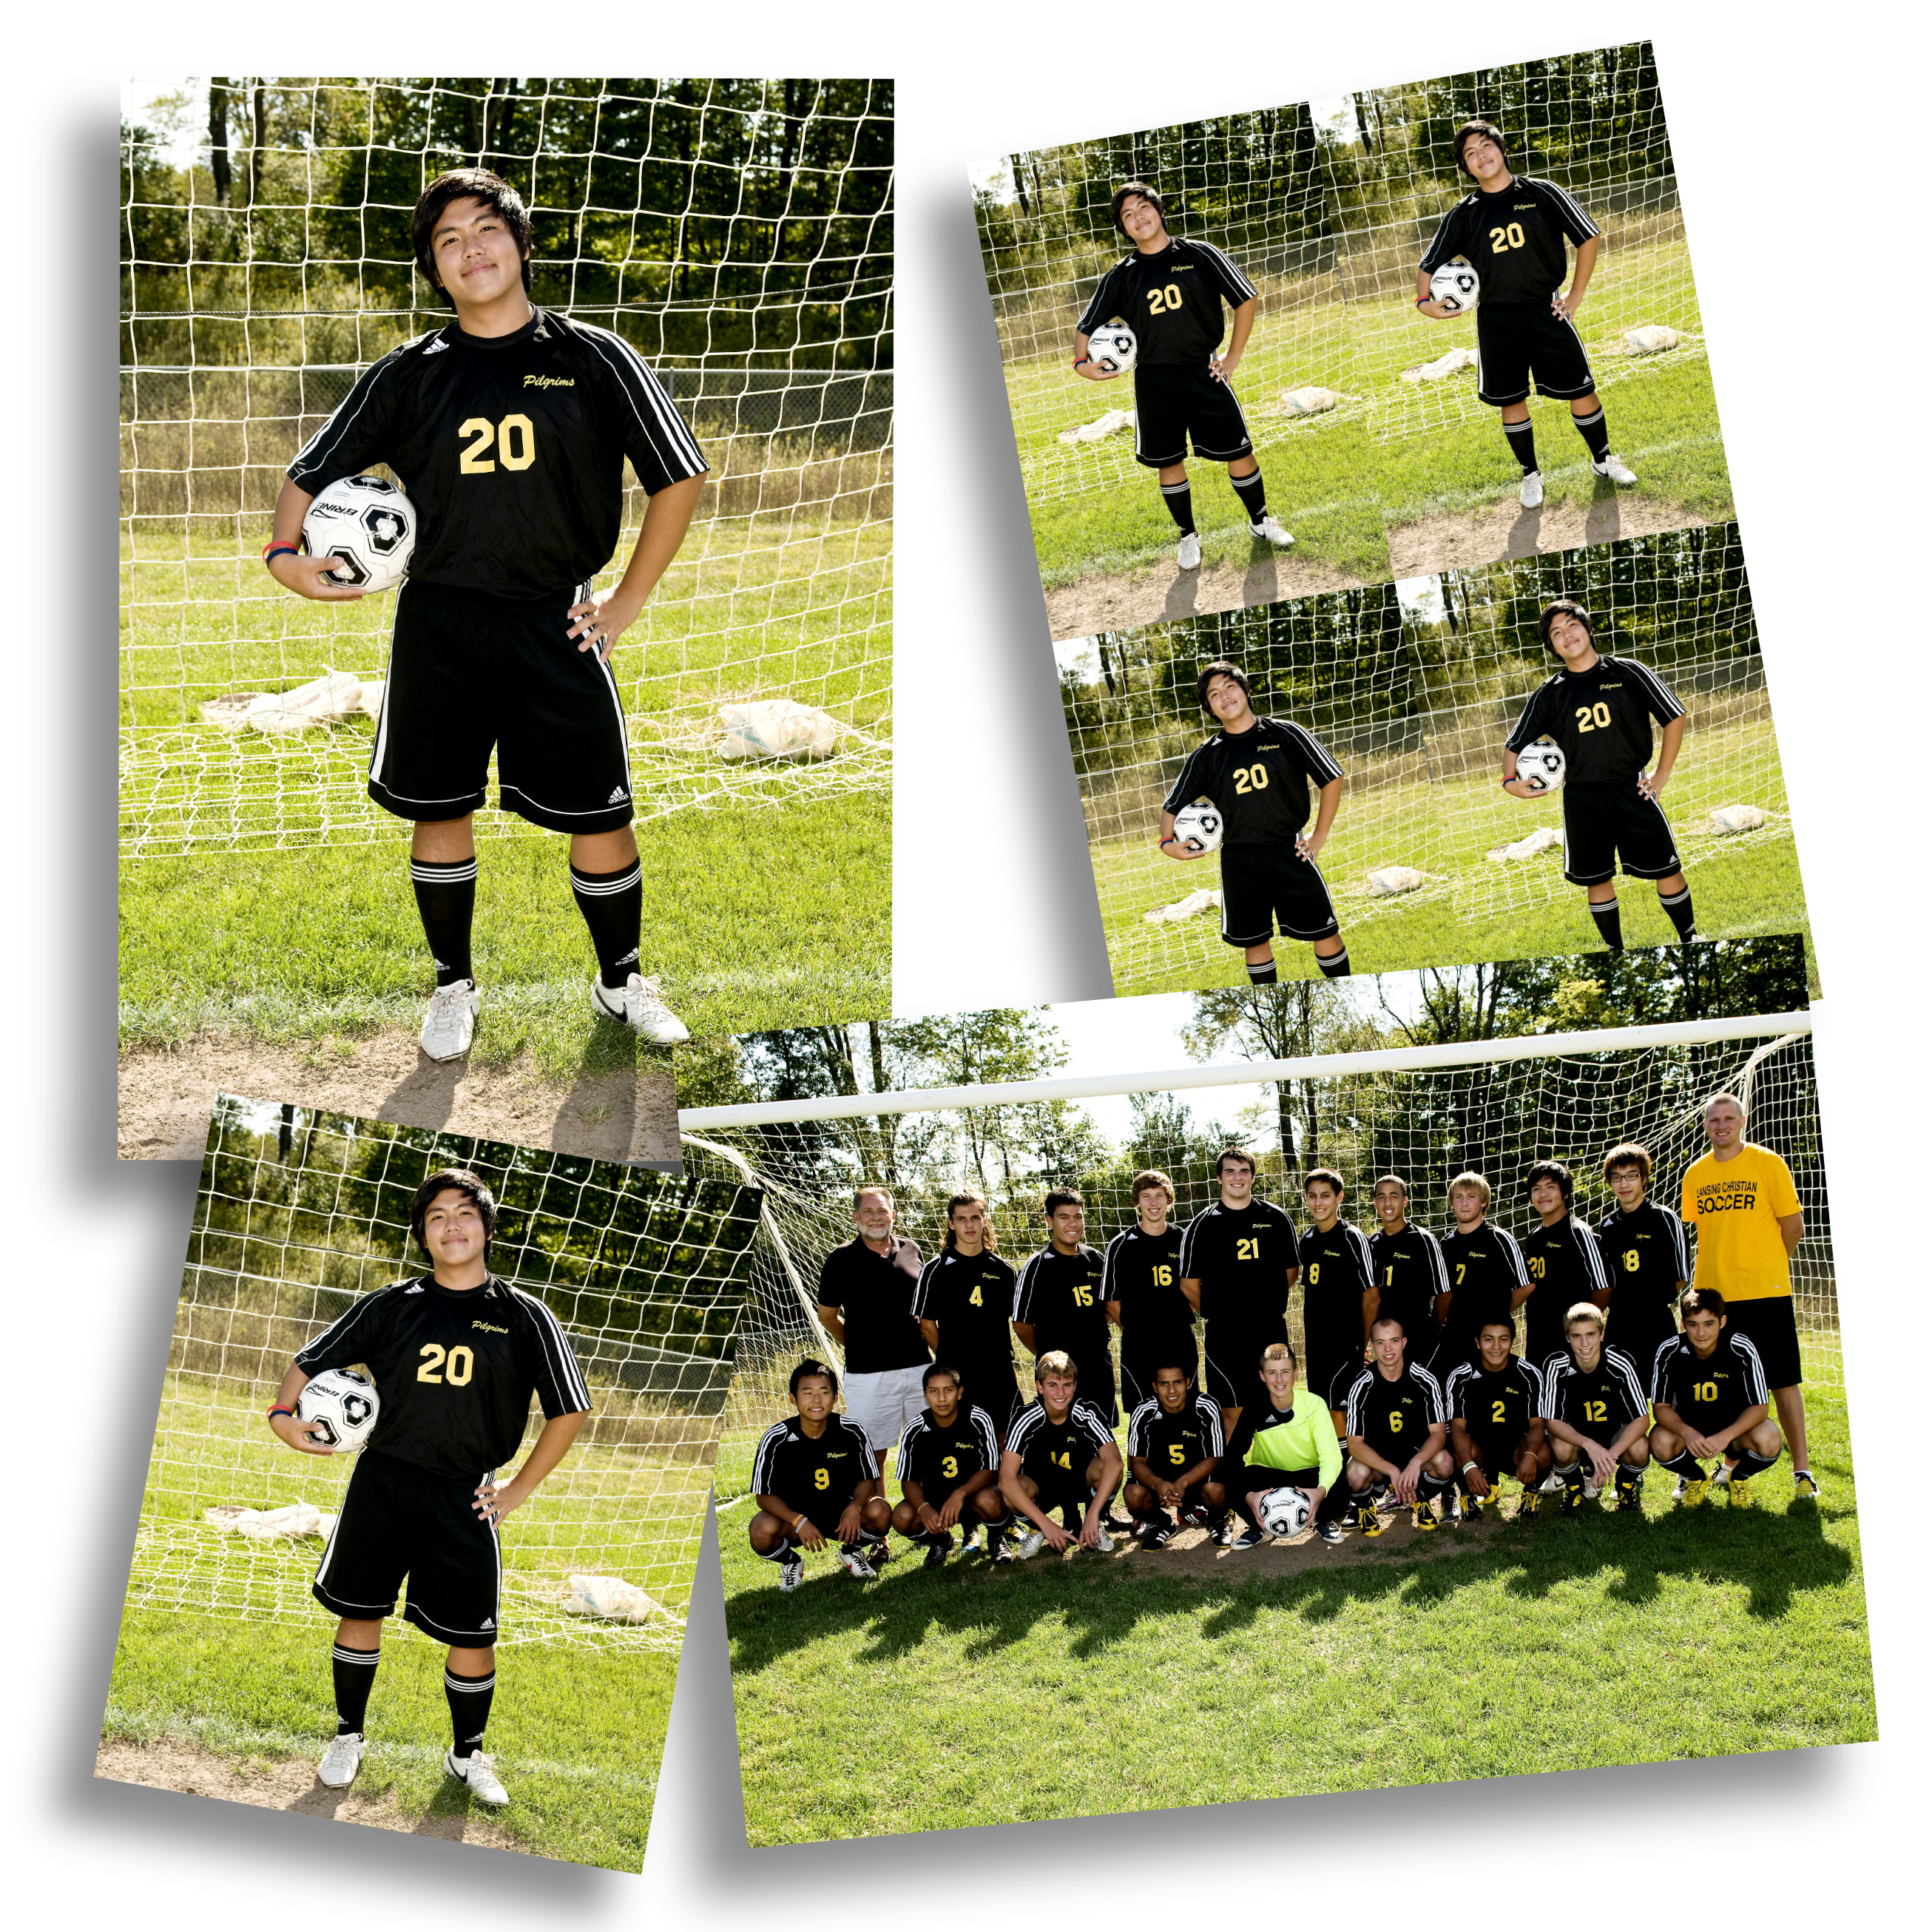 Soccer Team & Individual Photos Printed in Different Sizes